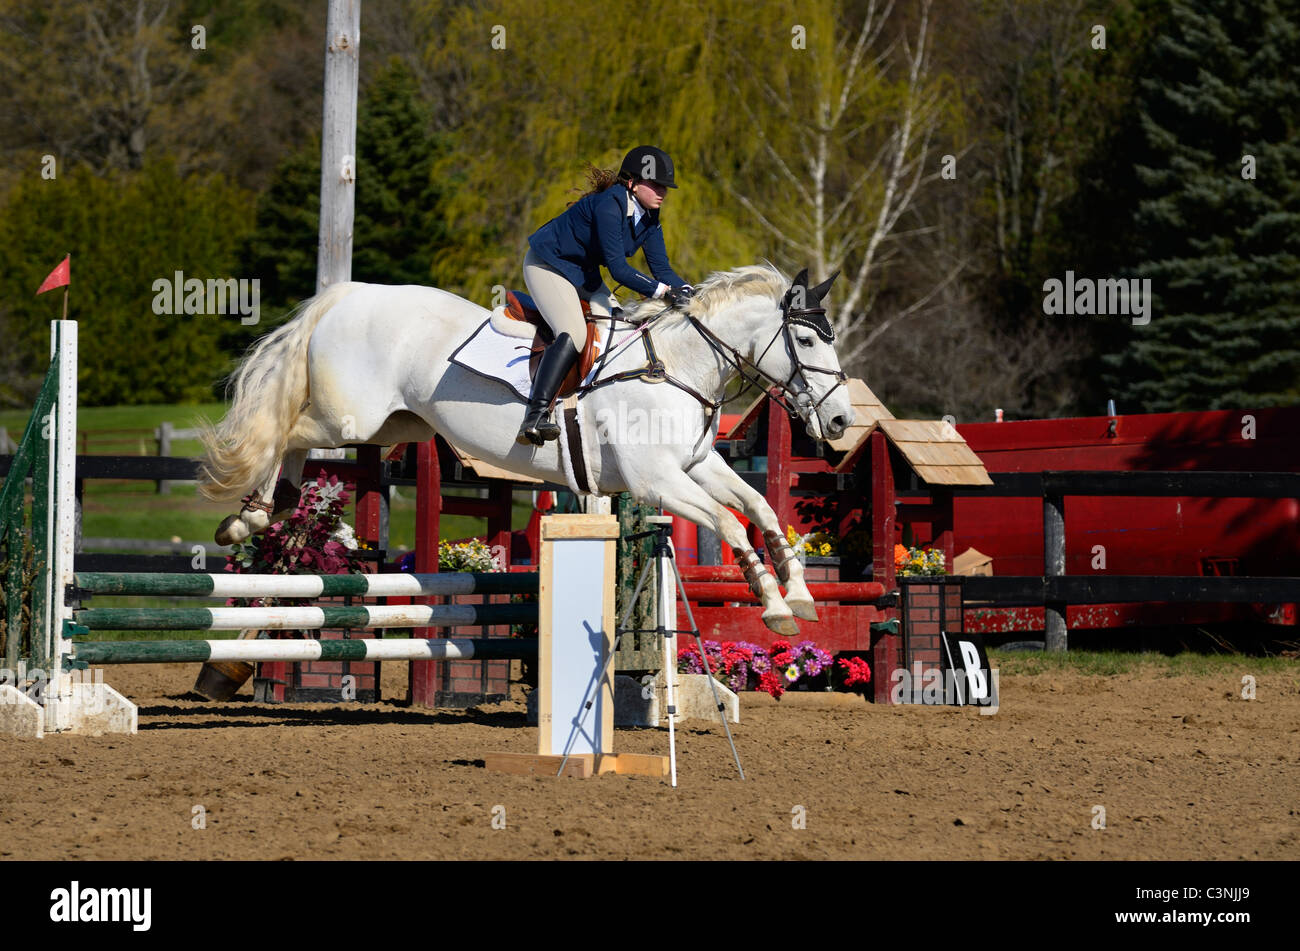 Gray horse and teen rider sailing over a jump at an outdoor equestrian competition - Stock Image